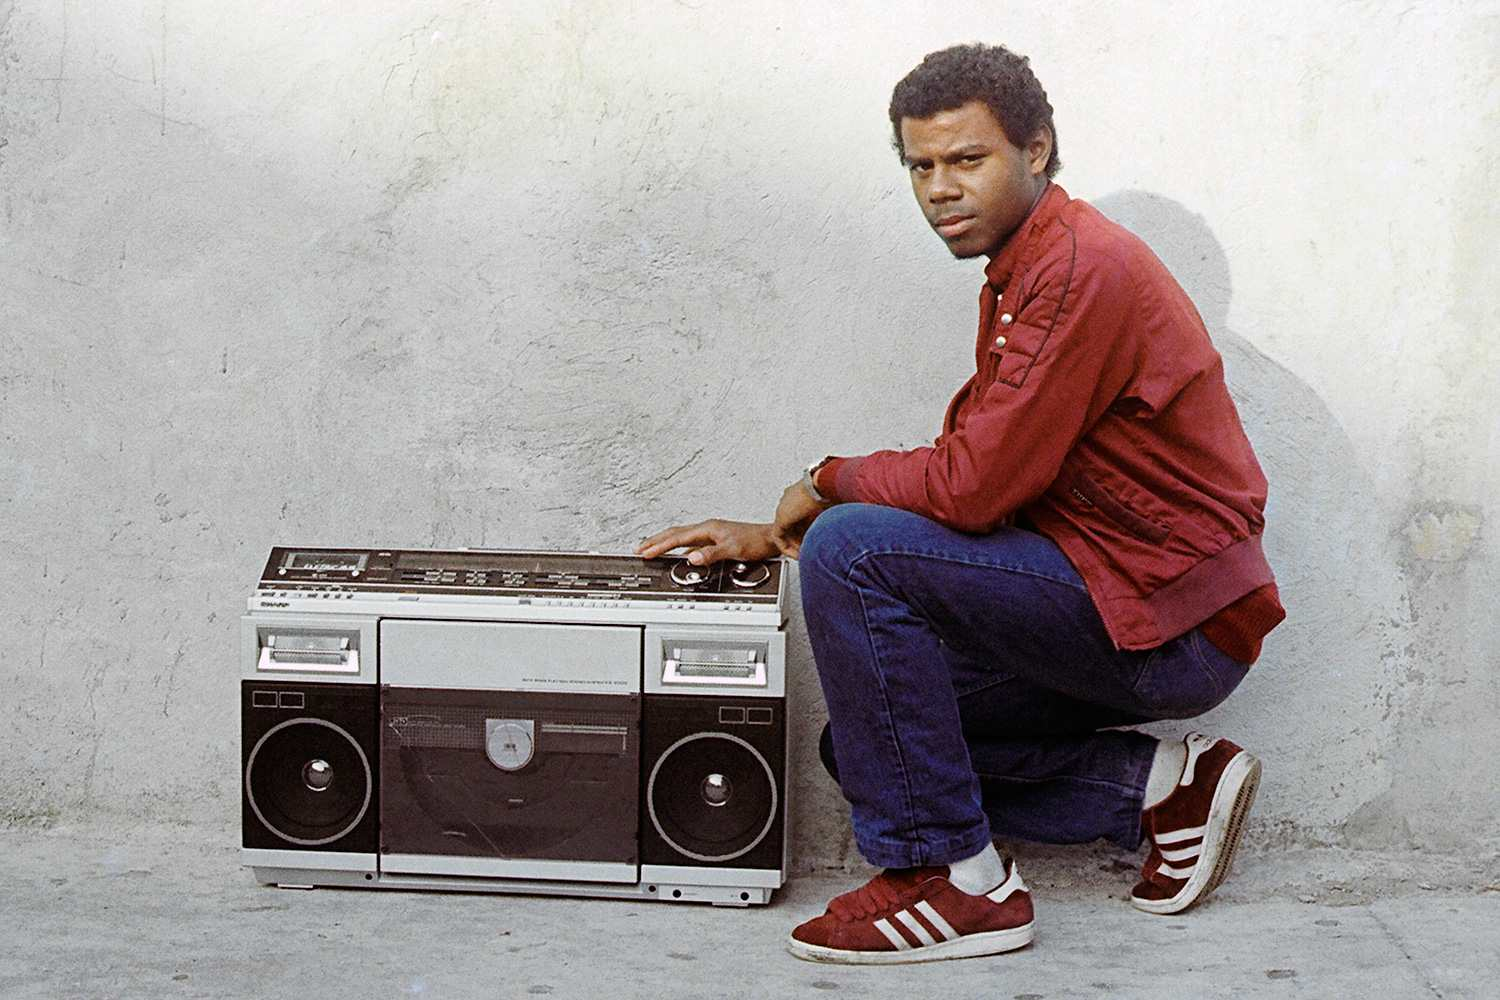 Tom the Great beside a boombox